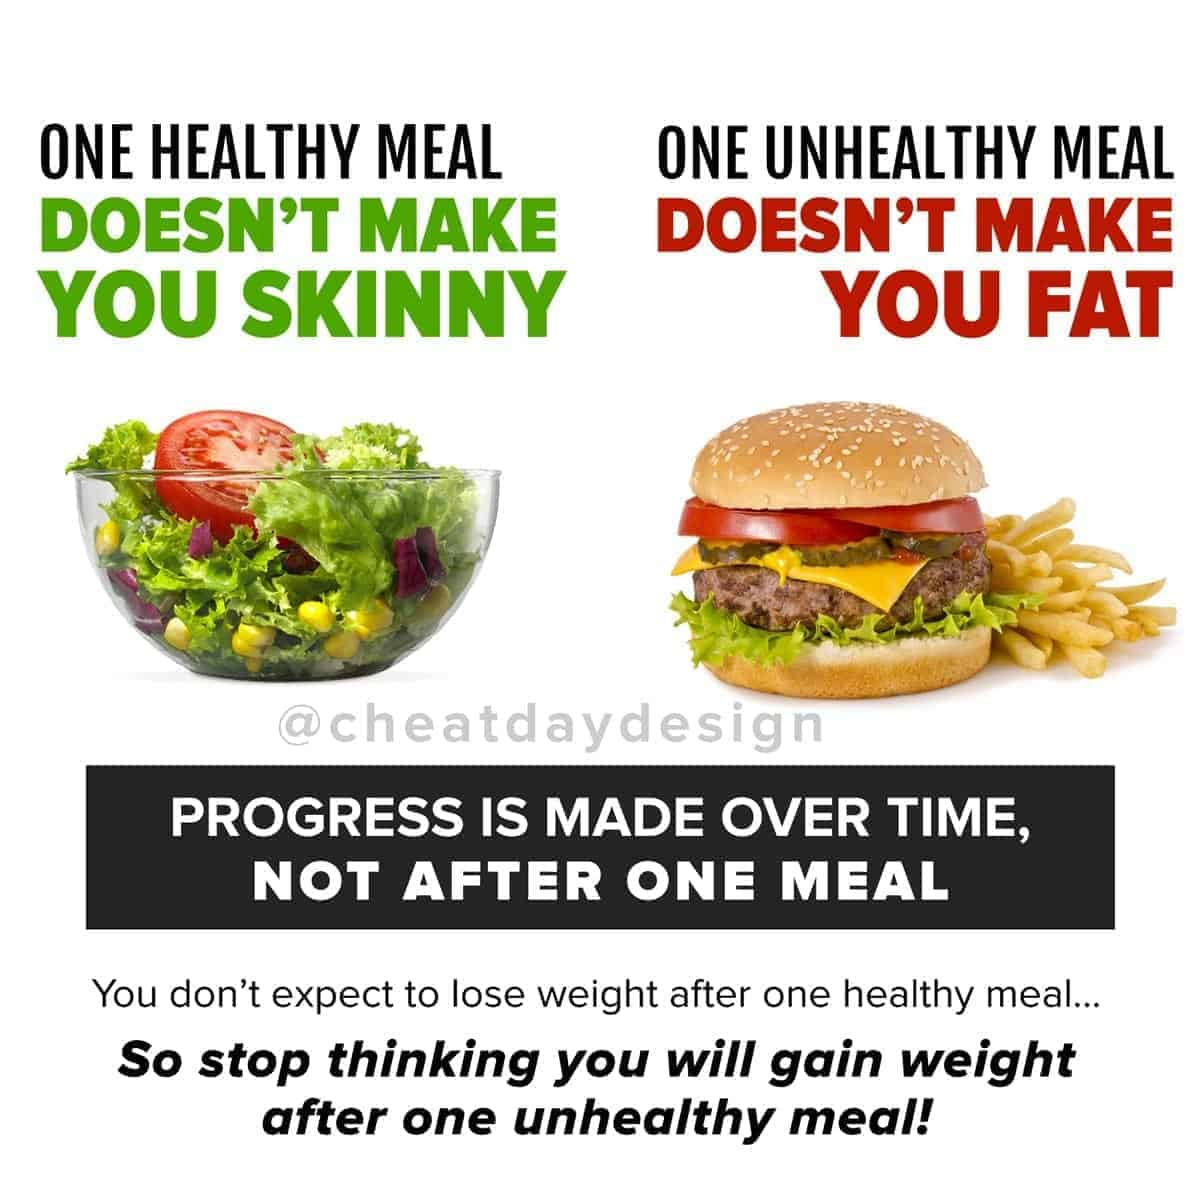 One unhealthy meal won't make you fat